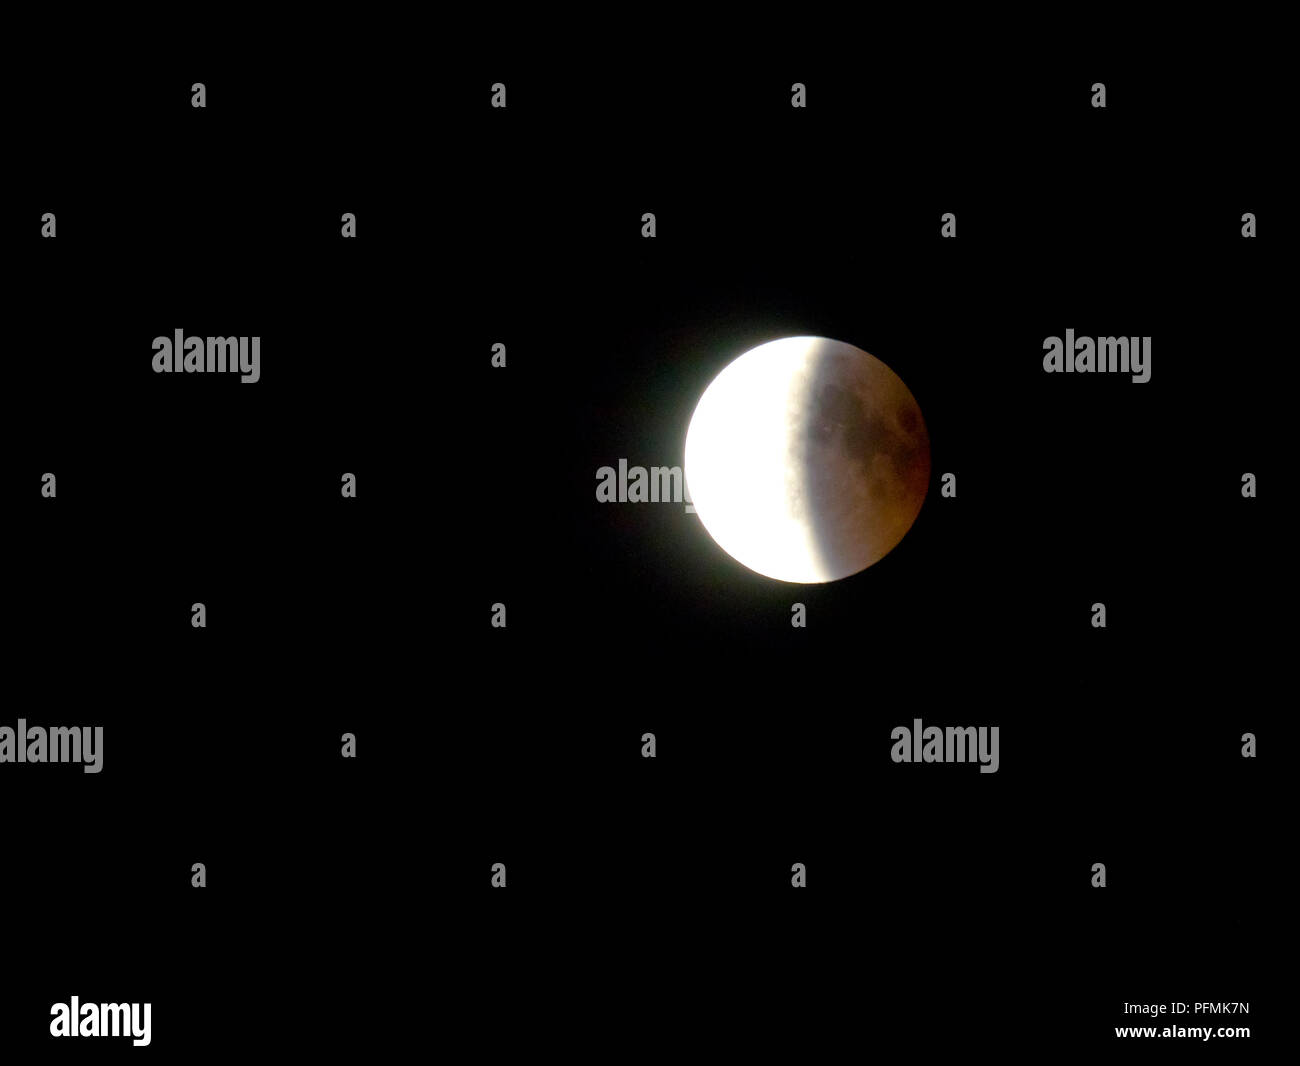 Full moon, moon emerges from Earth's shadow, total lunar eclipse, 07/27/2018, Rosenheim, Bavaria, Germany - Stock Image